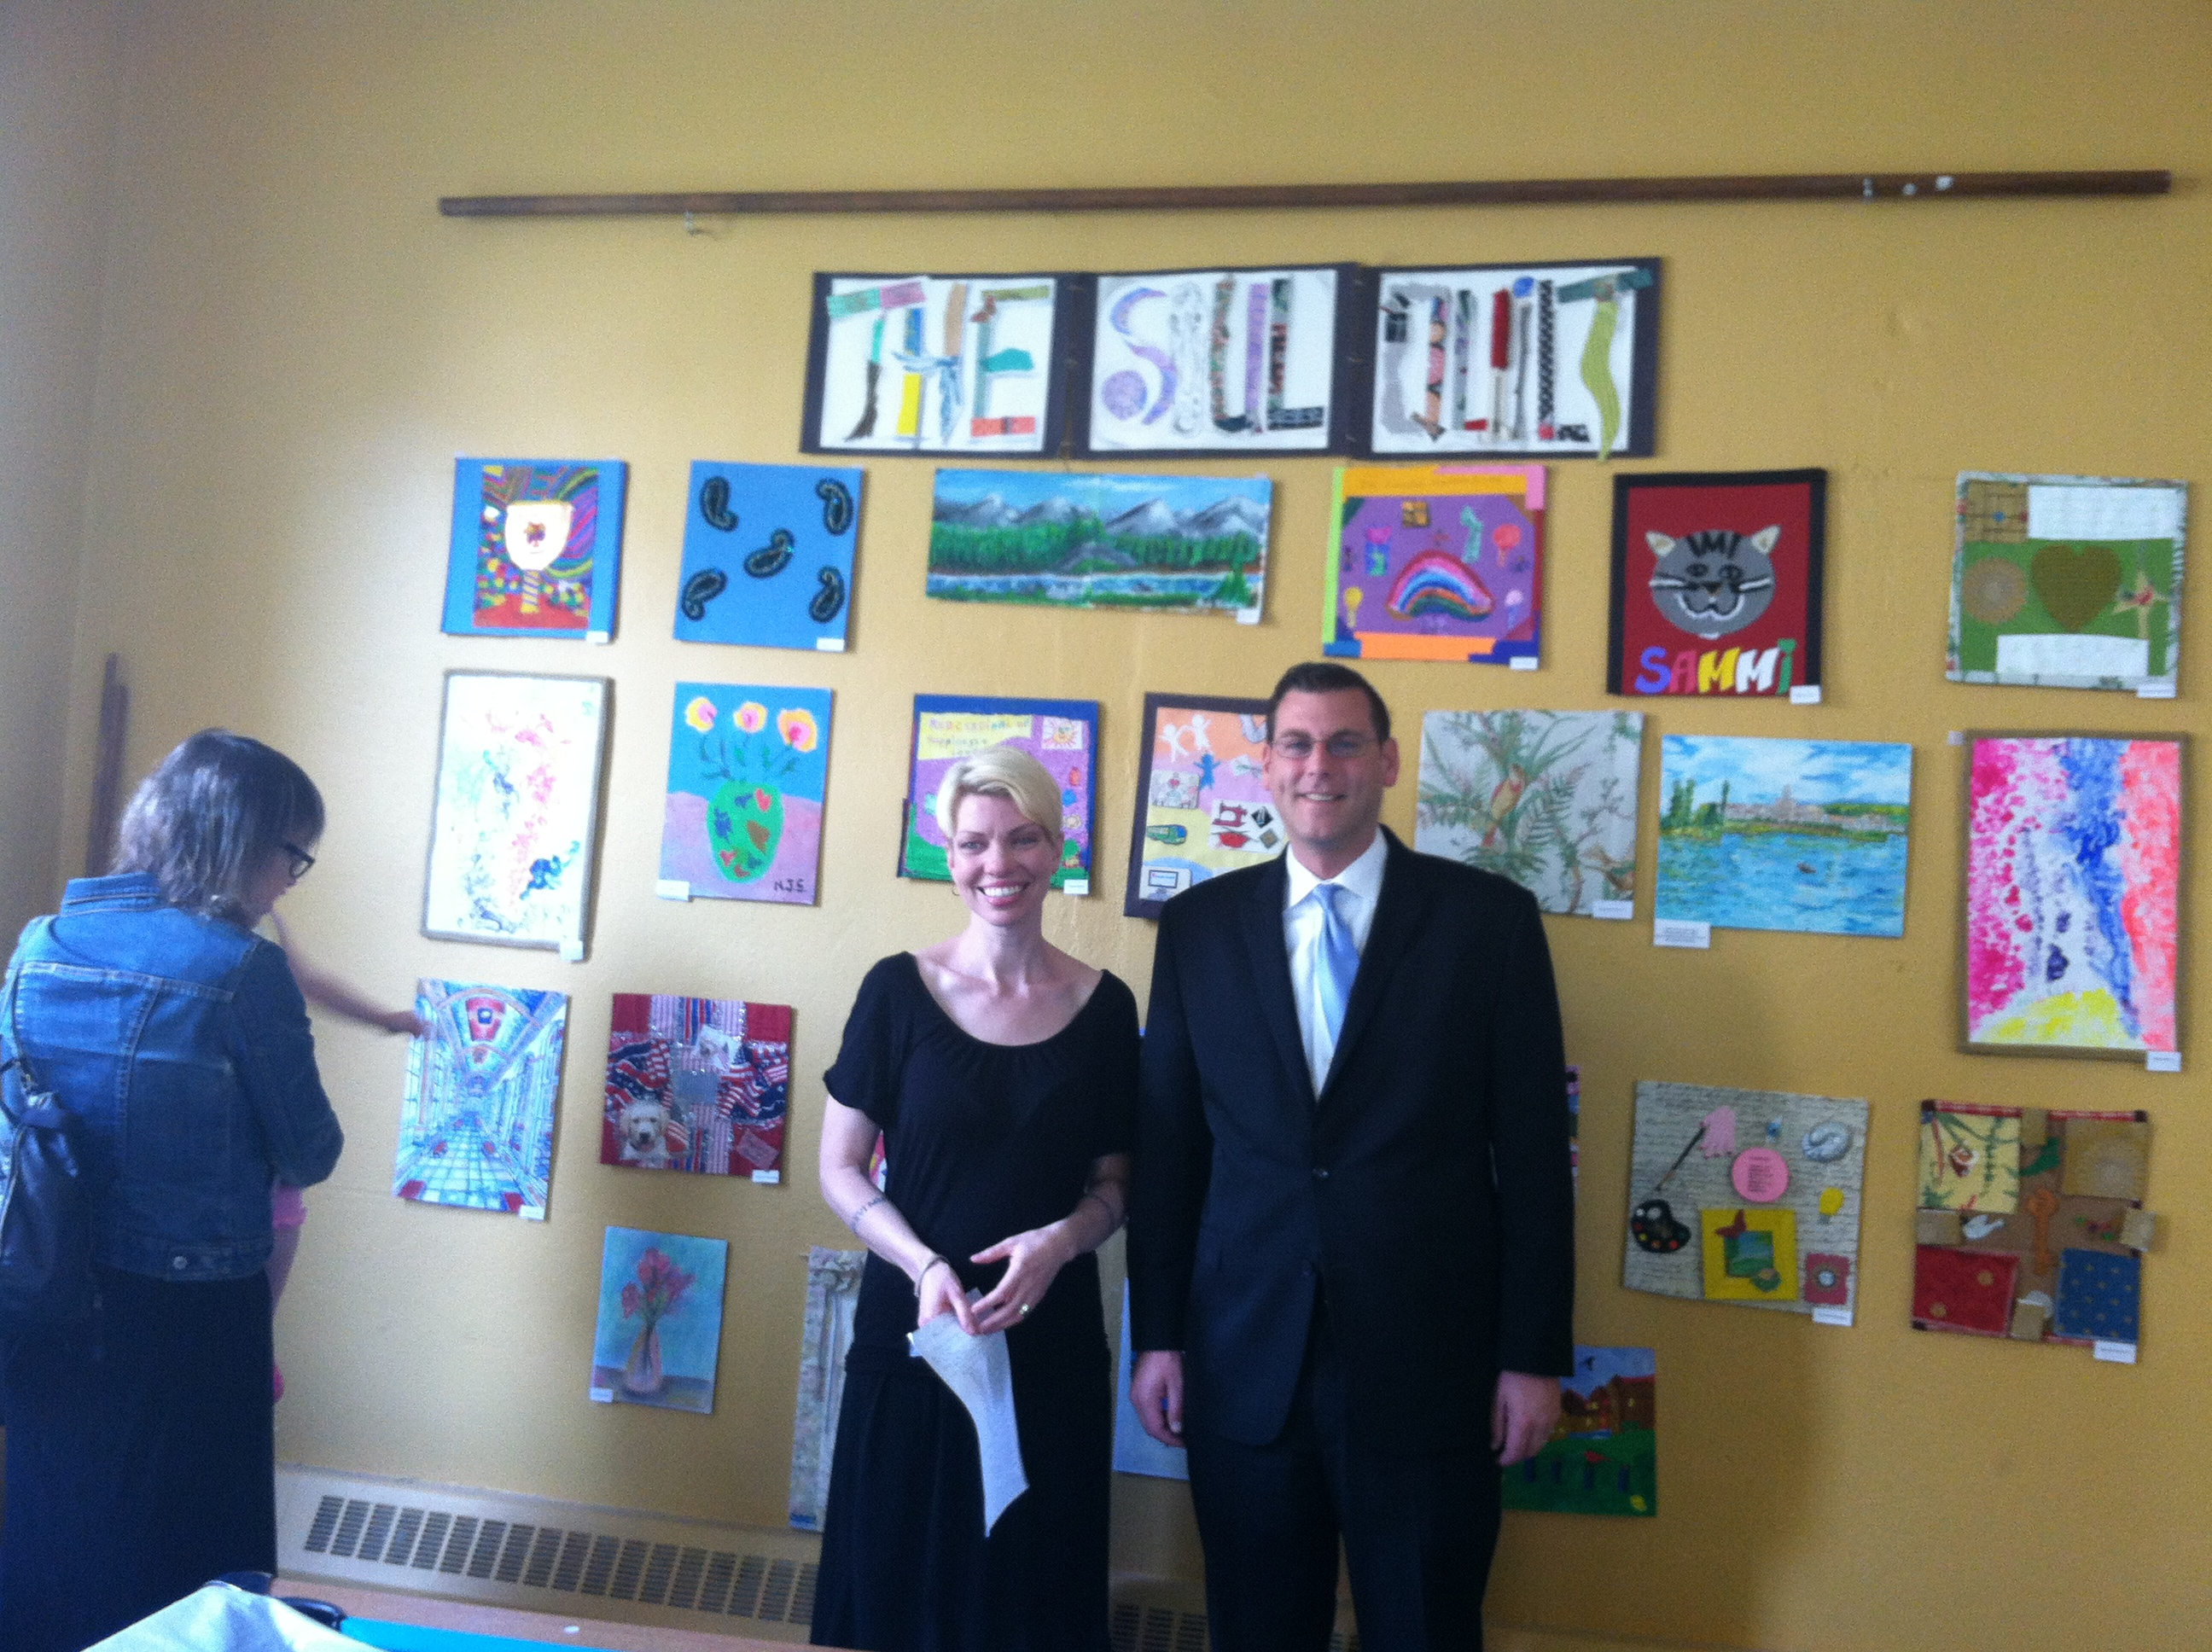 On Friday, May 17, 2013, Assemblyman Braunstein attended the Services Now for Adult Persons, Inc. of Eastern Queens (SNAP) Seniors Partnering with Artists Citywide (SPARC) Soul Quilt Ceremony. Assemblyman Braunstein is pictured here with Jennifer Bailey, SPARC Artist-in-Residence.